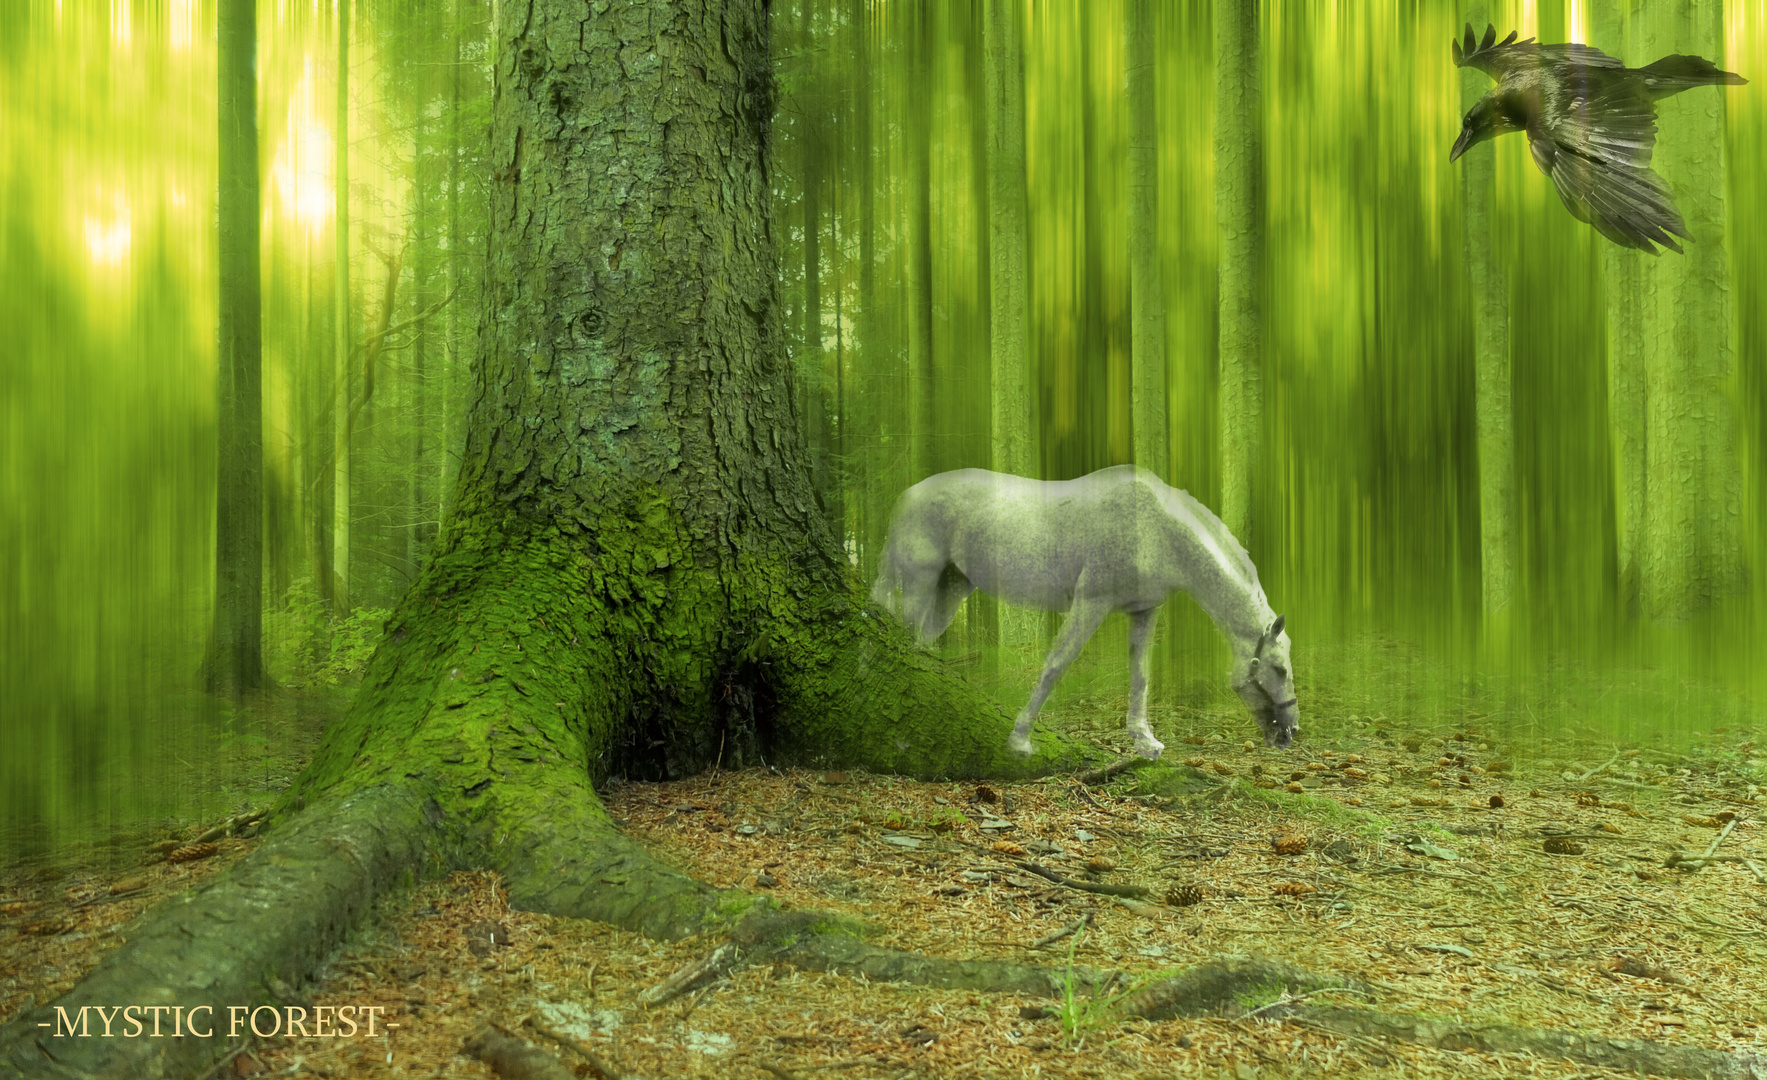 -MYSTIC FOREST-